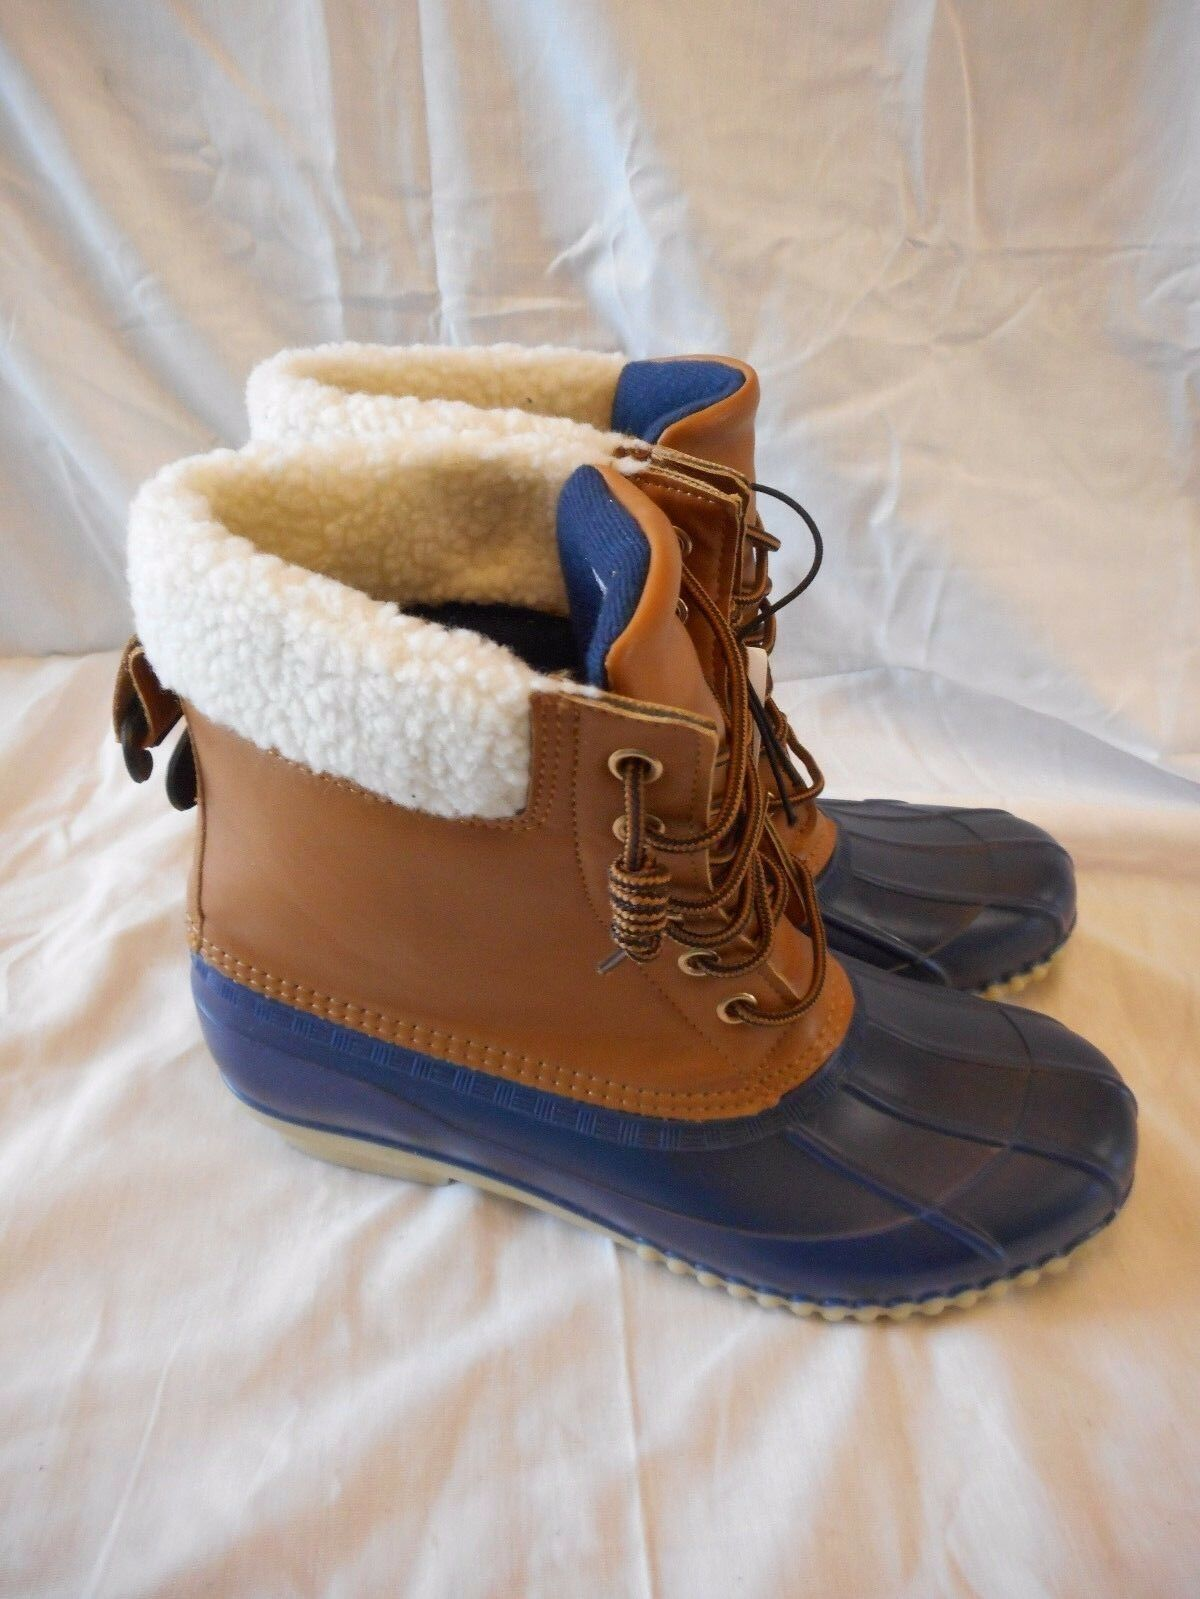 Women's Rue 21 Blue & Brown Rubber Boots Size Large 8/9 NEW Water Resistant